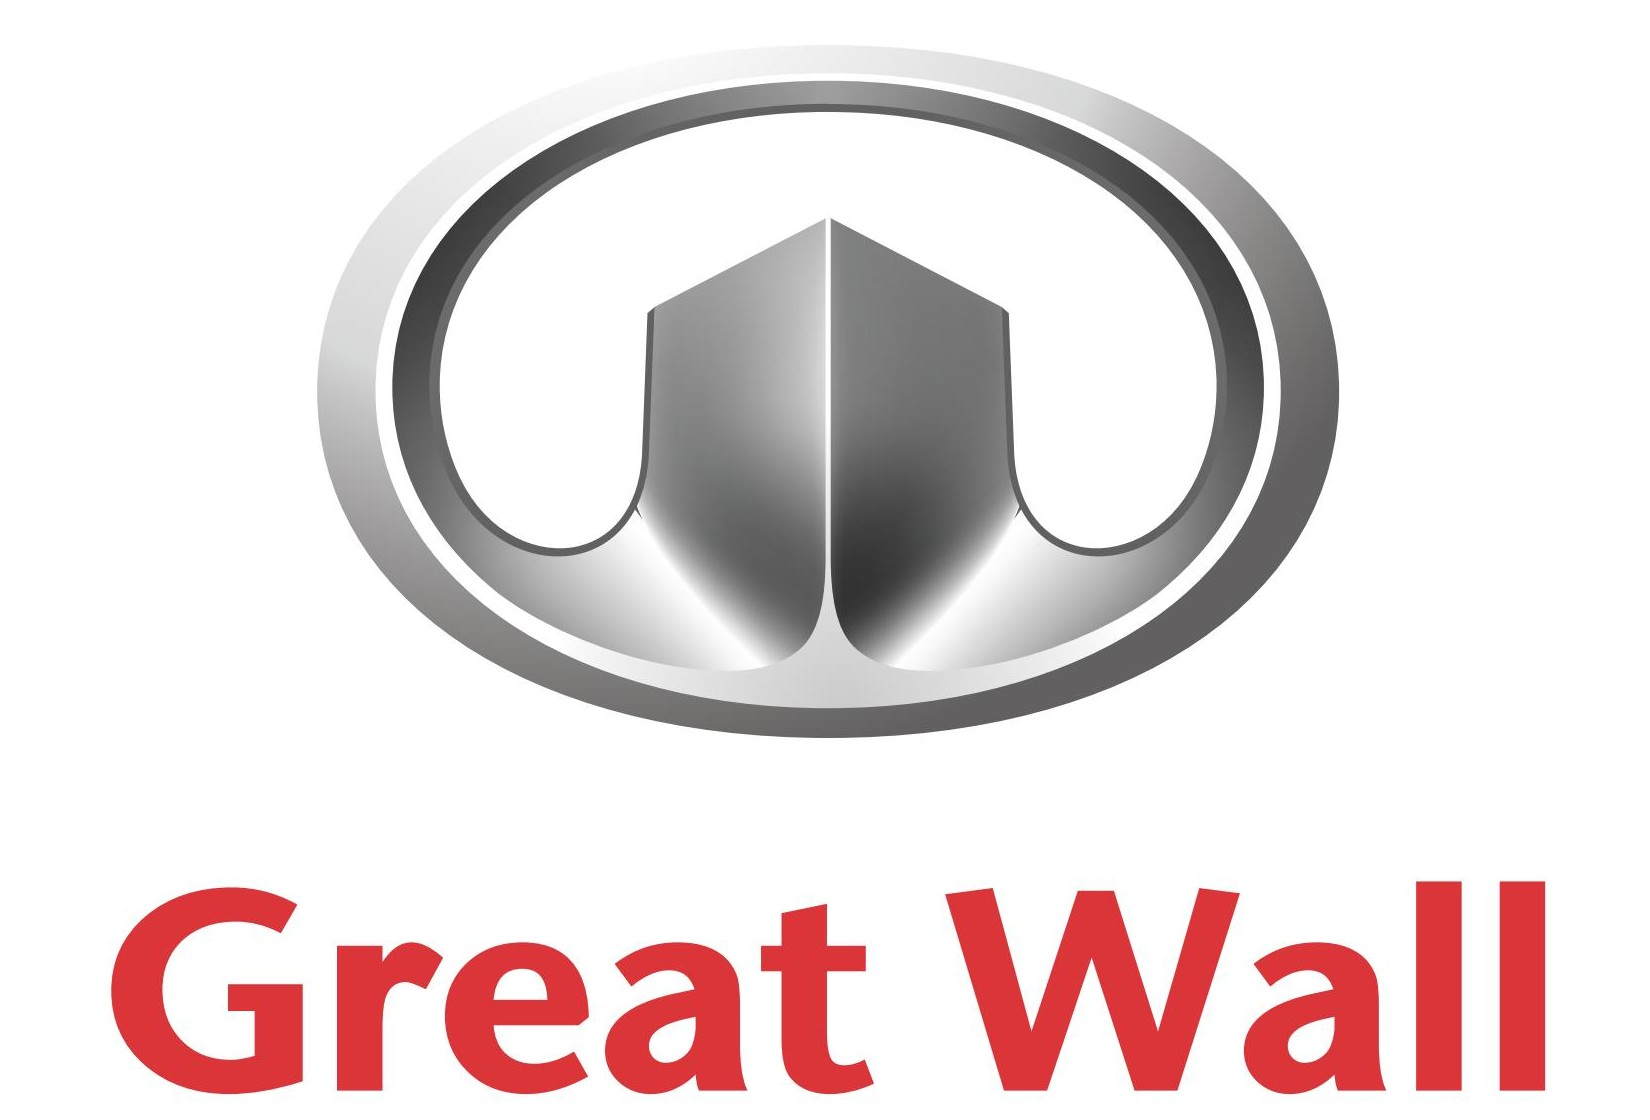 Chinese Auto Firm Great Wall Plans India Entry Plus 8 More Motorbeam Harley Davidson Bikes